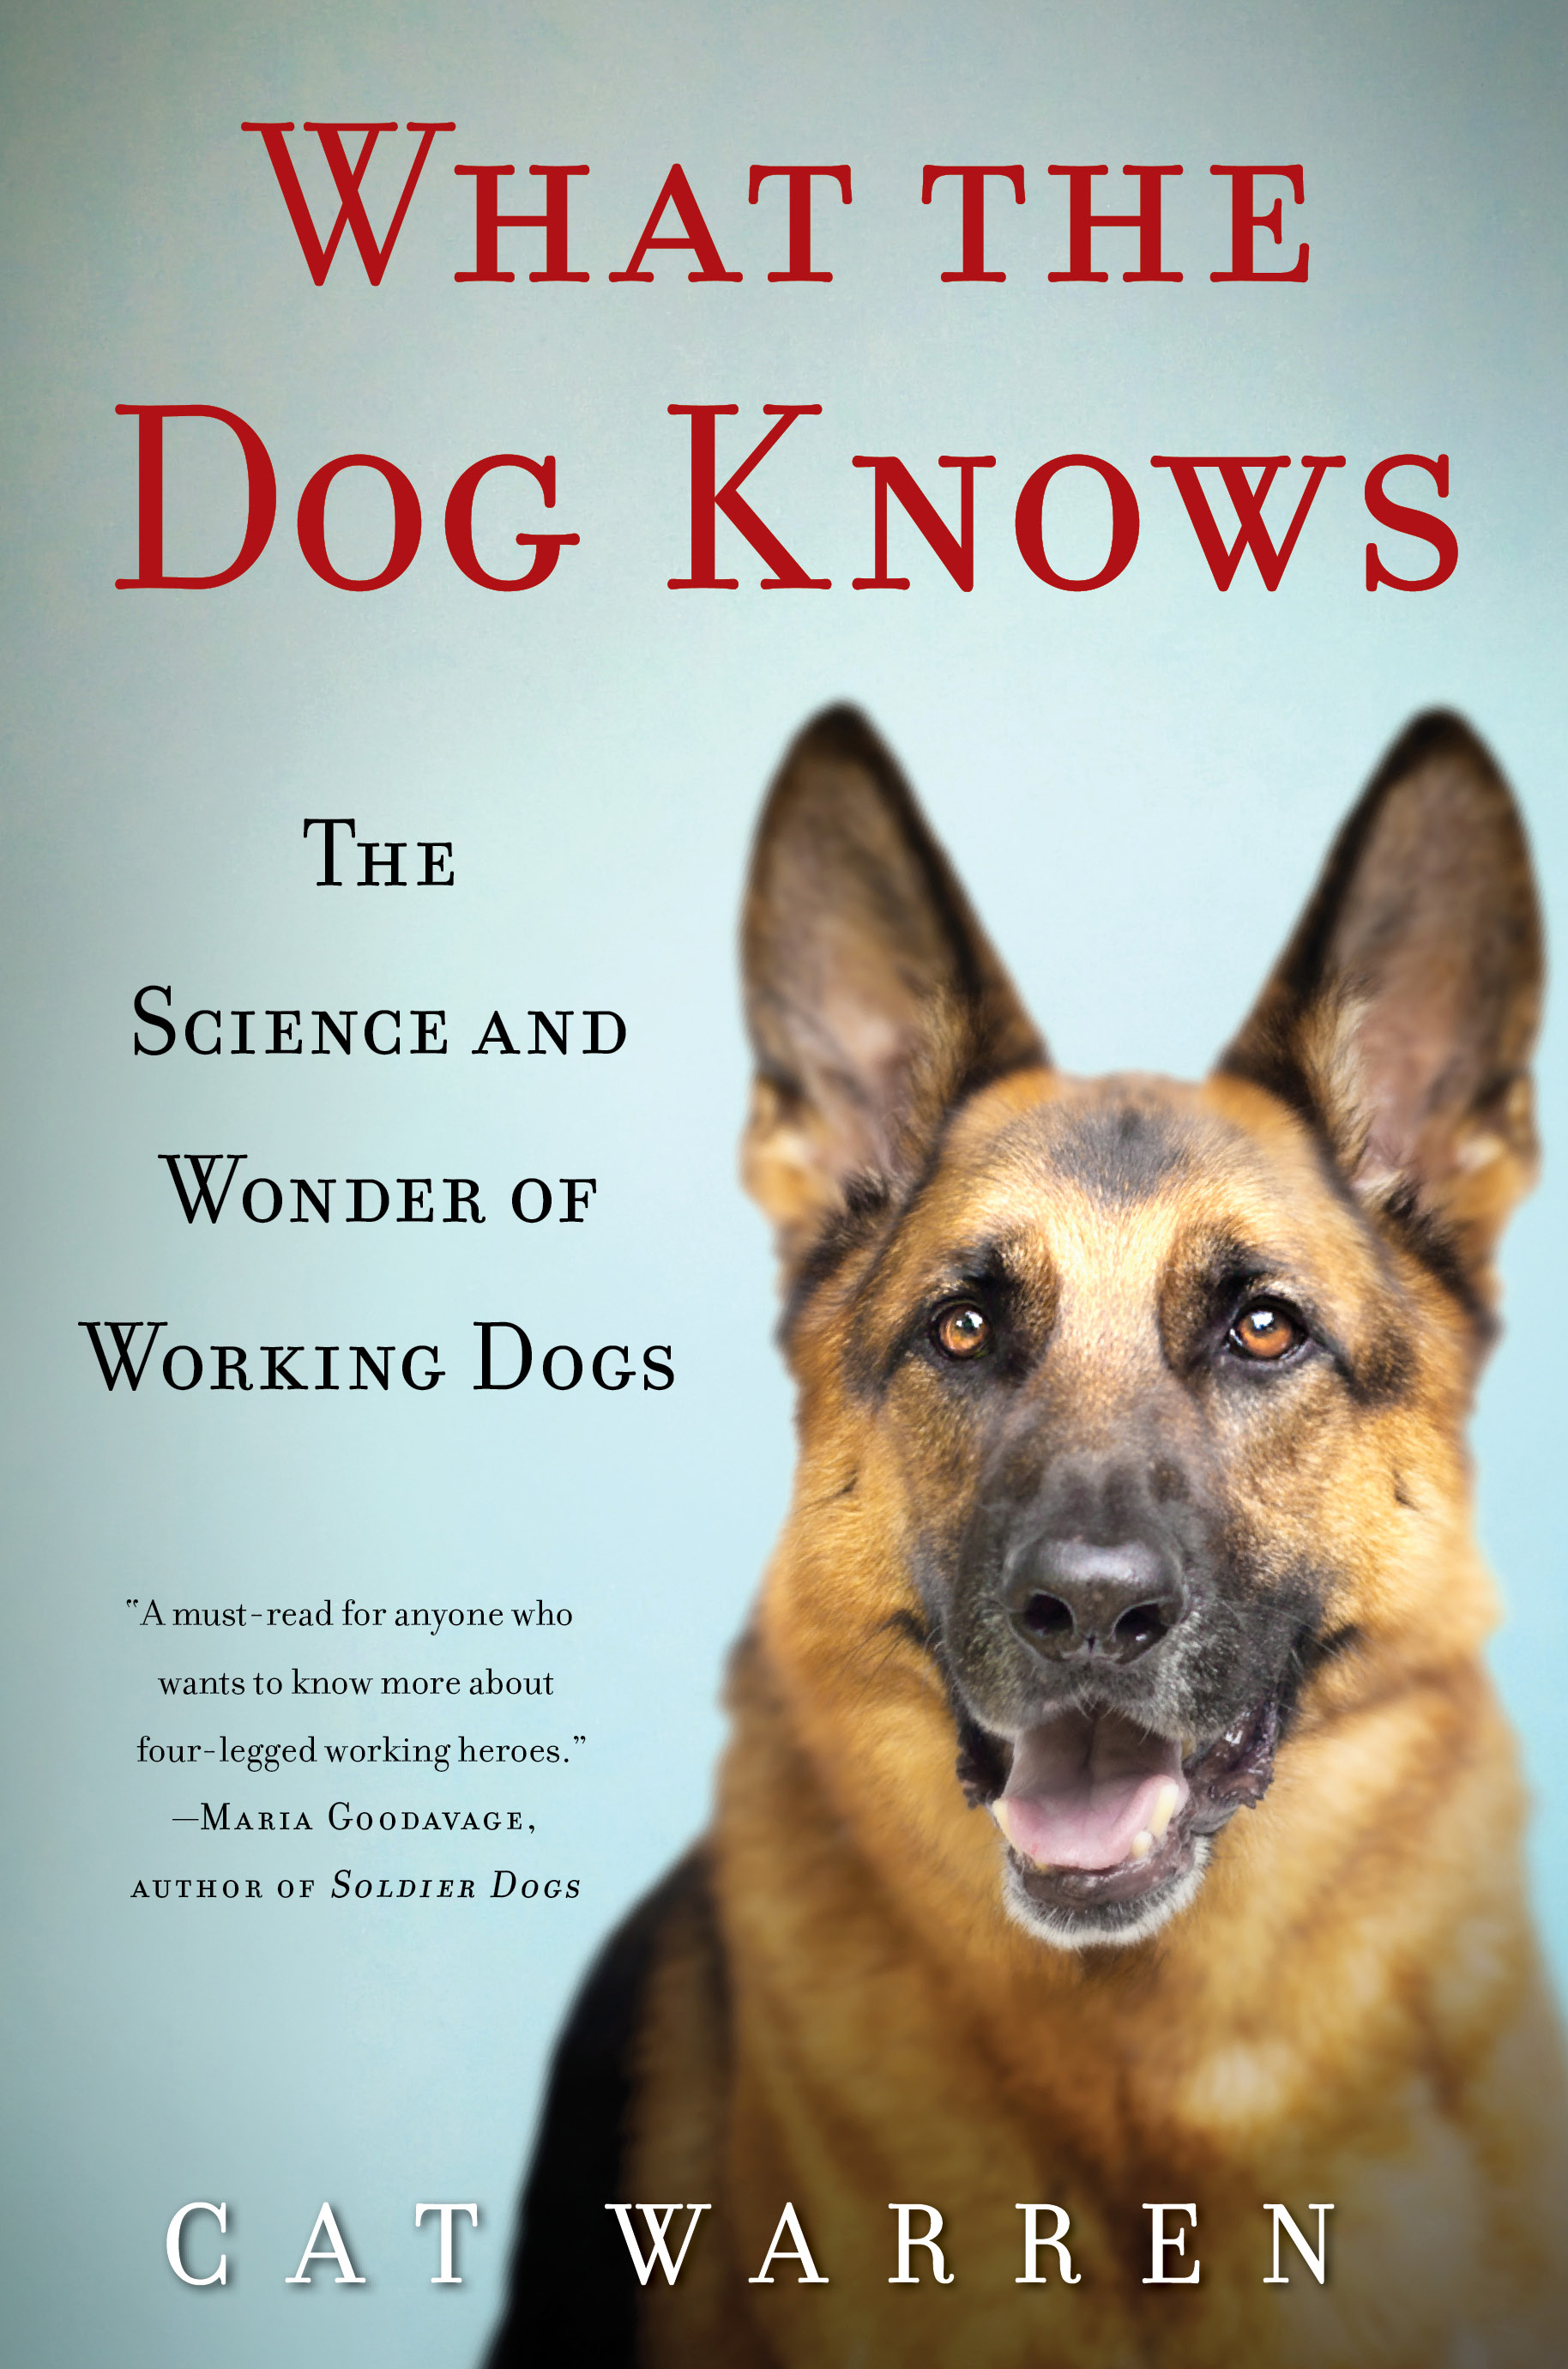 Swanky 4th Graders What Dog What Dog Knows Book By Cat Warren Official Publisher Page Books About Dogs Non Fiction Books About Dogs bark post Books About Dogs